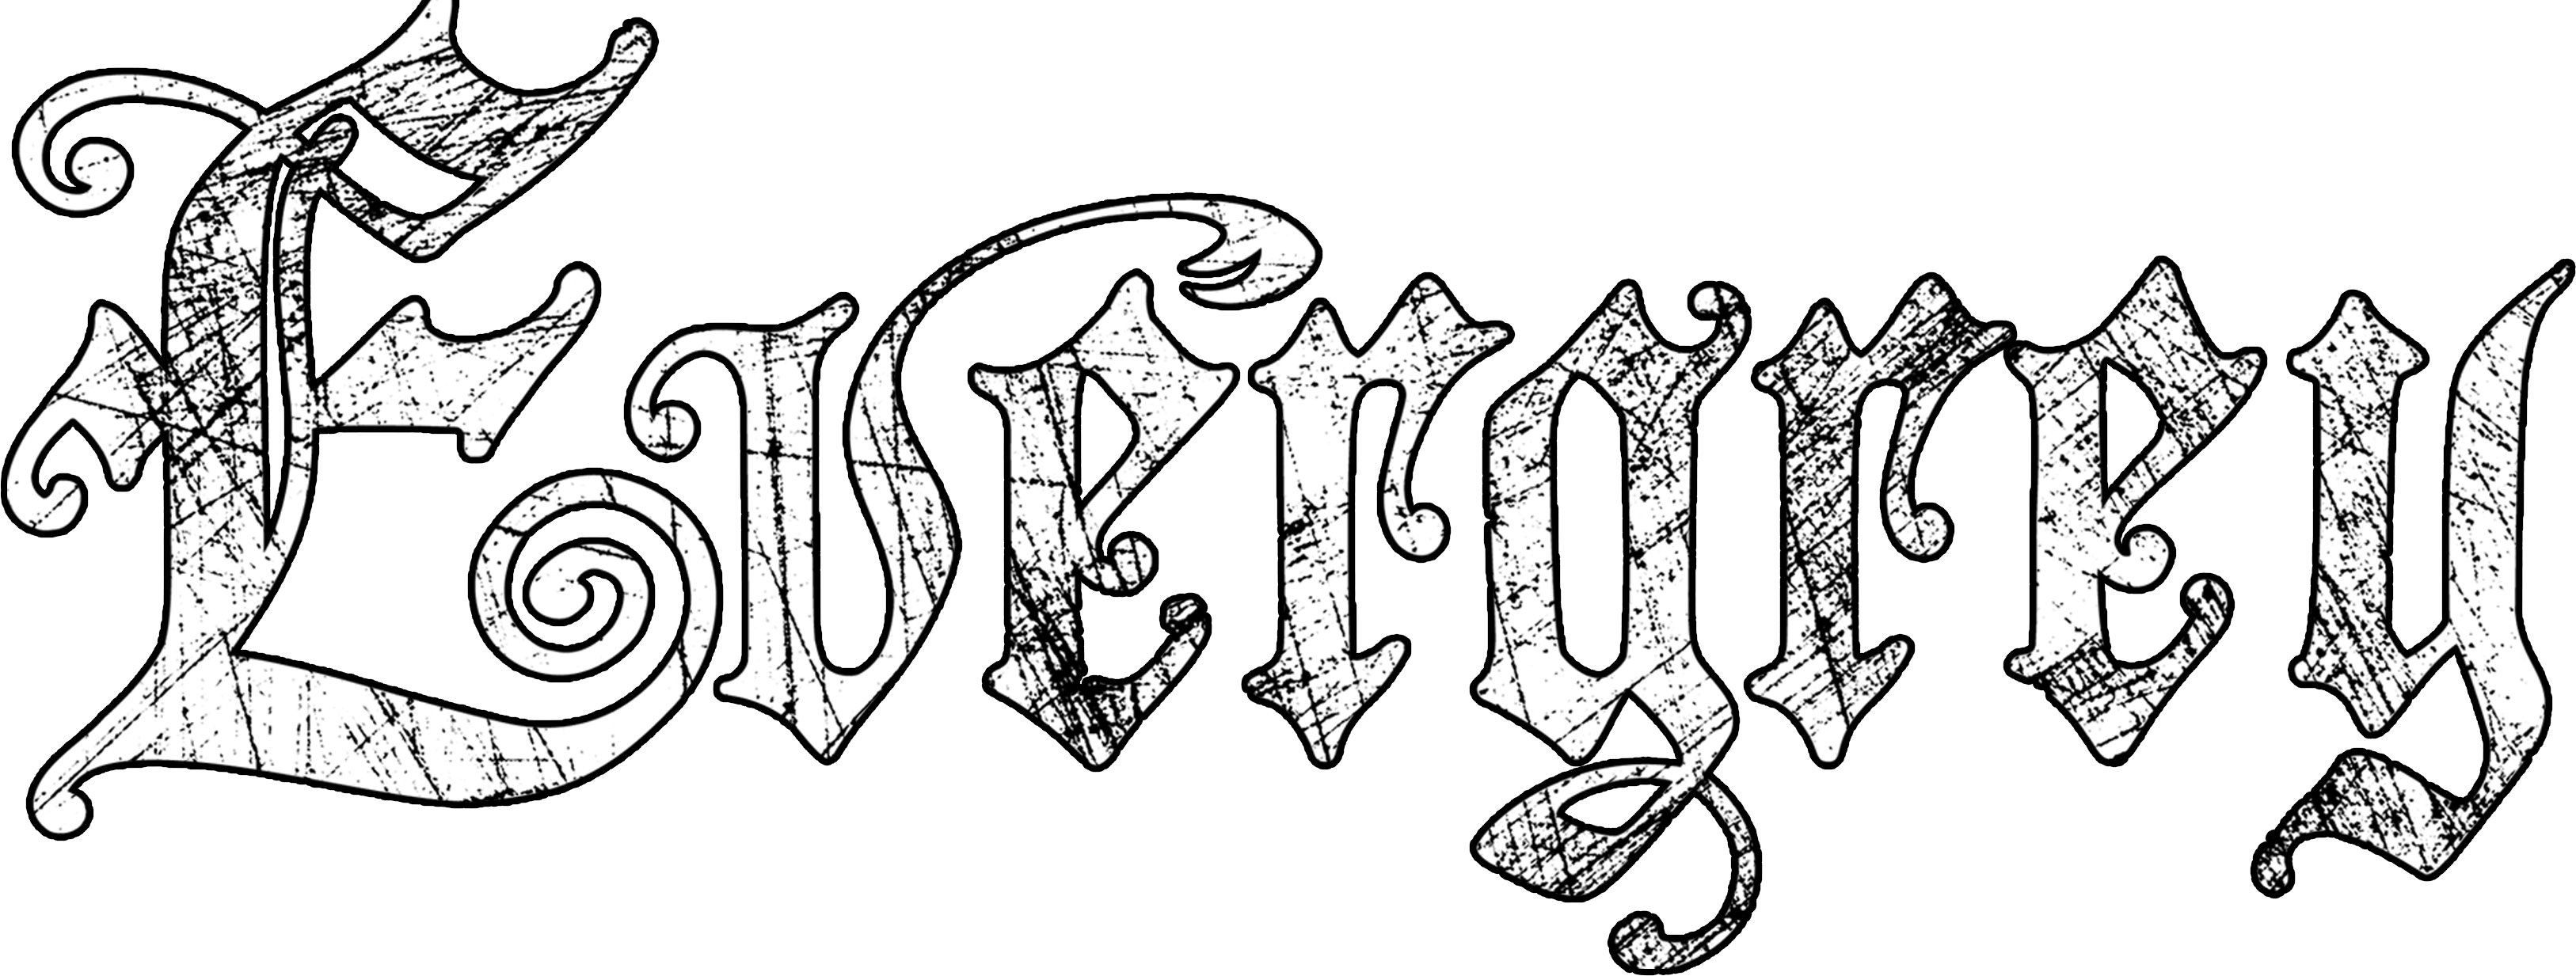 Evergrey Hd Desktop